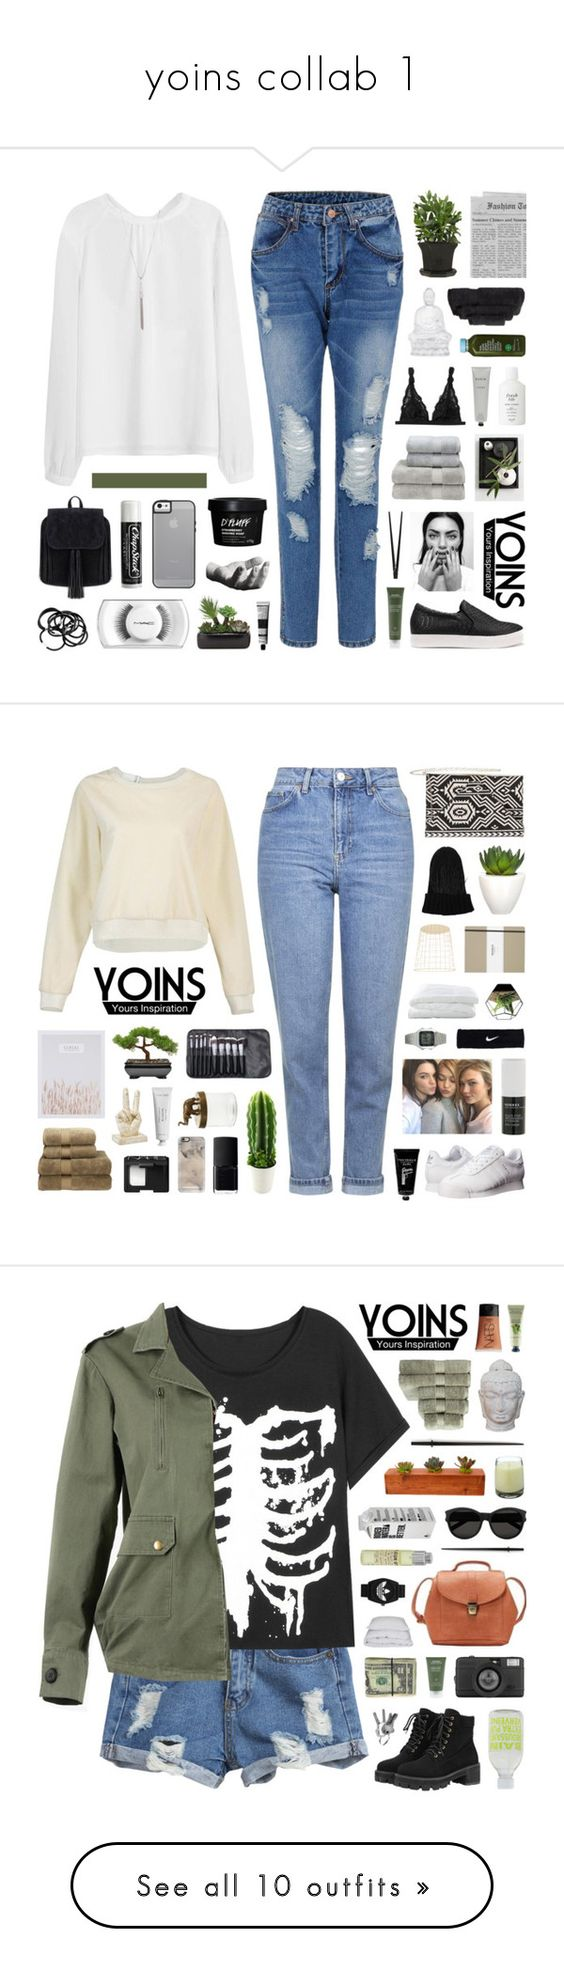 """""""yoins collab 1"""" by hhuricane ❤ liked on Polyvore featuring yoins, yoinscollection, melsunicorns, Bulgari, Lalique, Superior, Kale, Christy, Monki and Rodin Olio Lusso"""